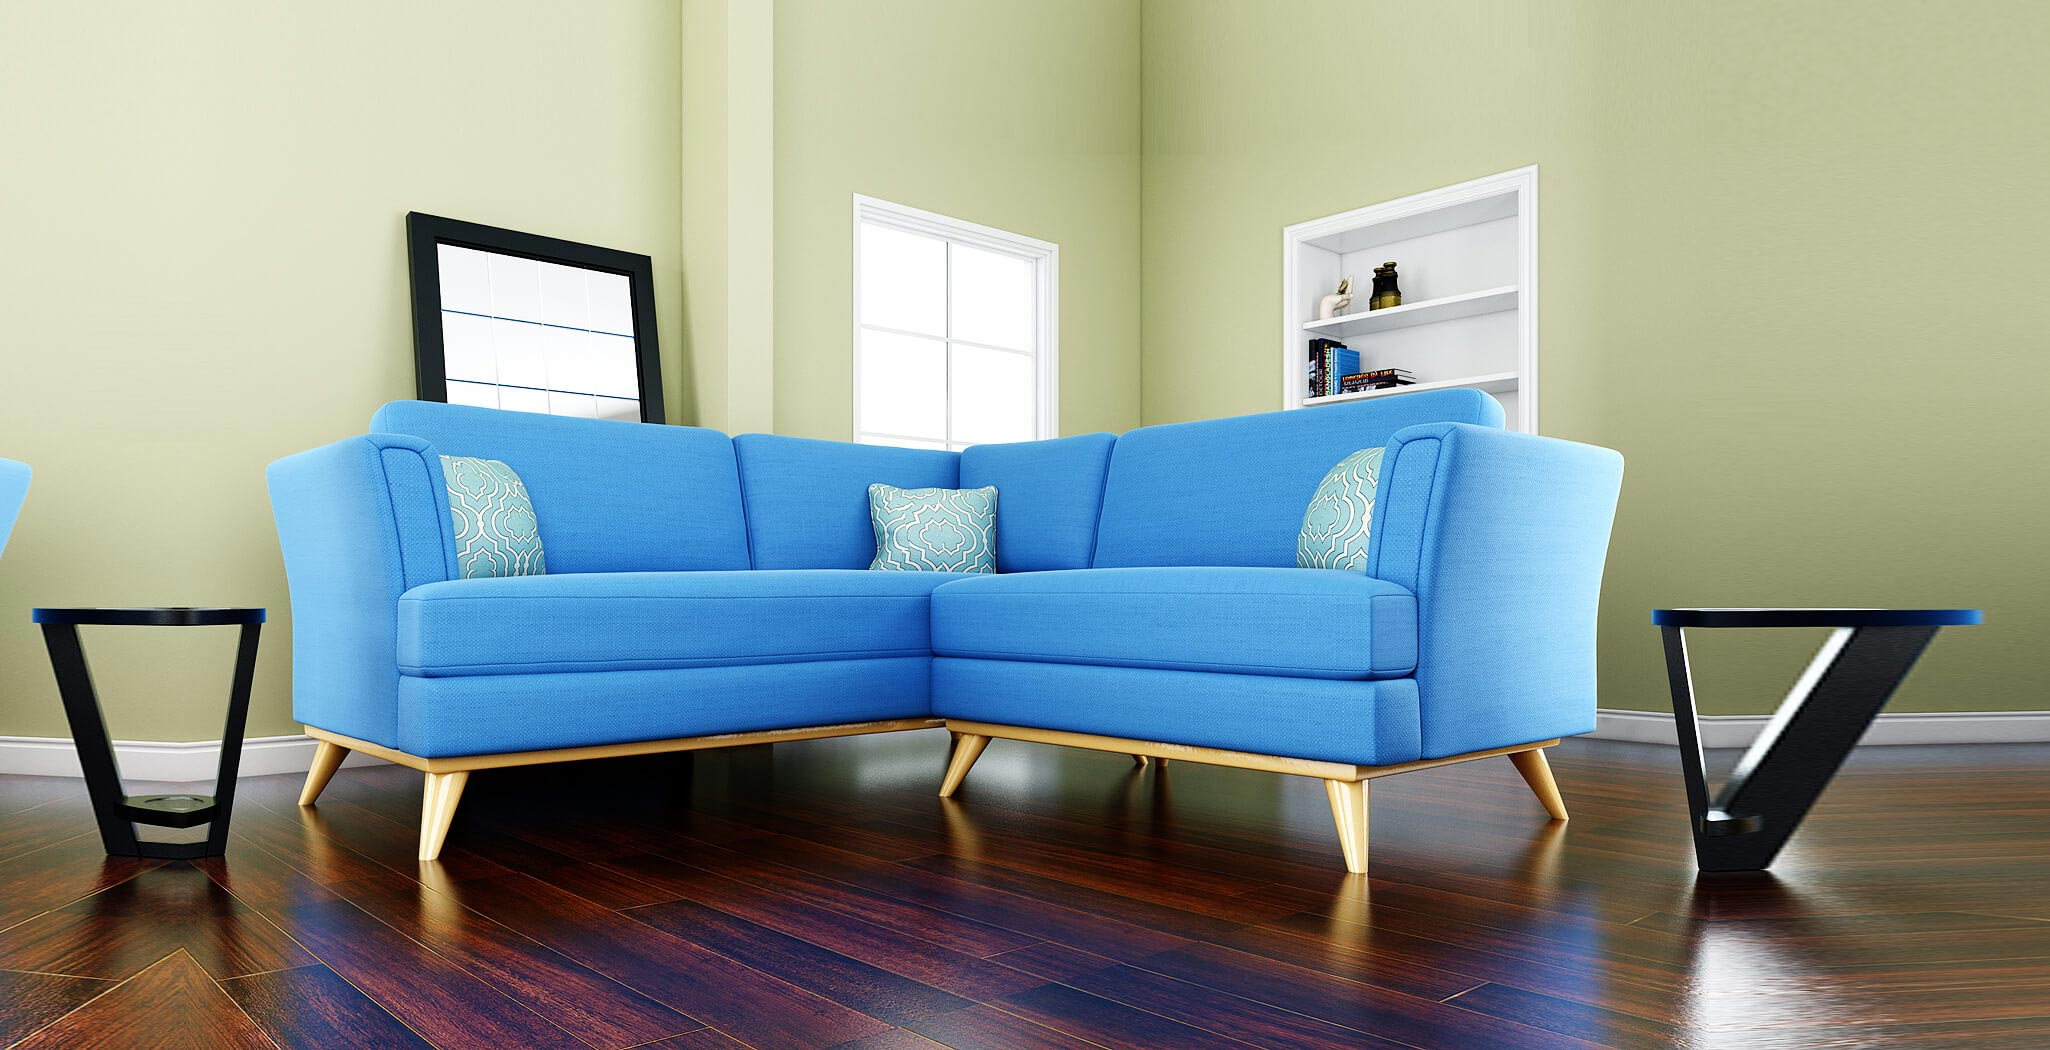 antalya sectional furniture gallery 2